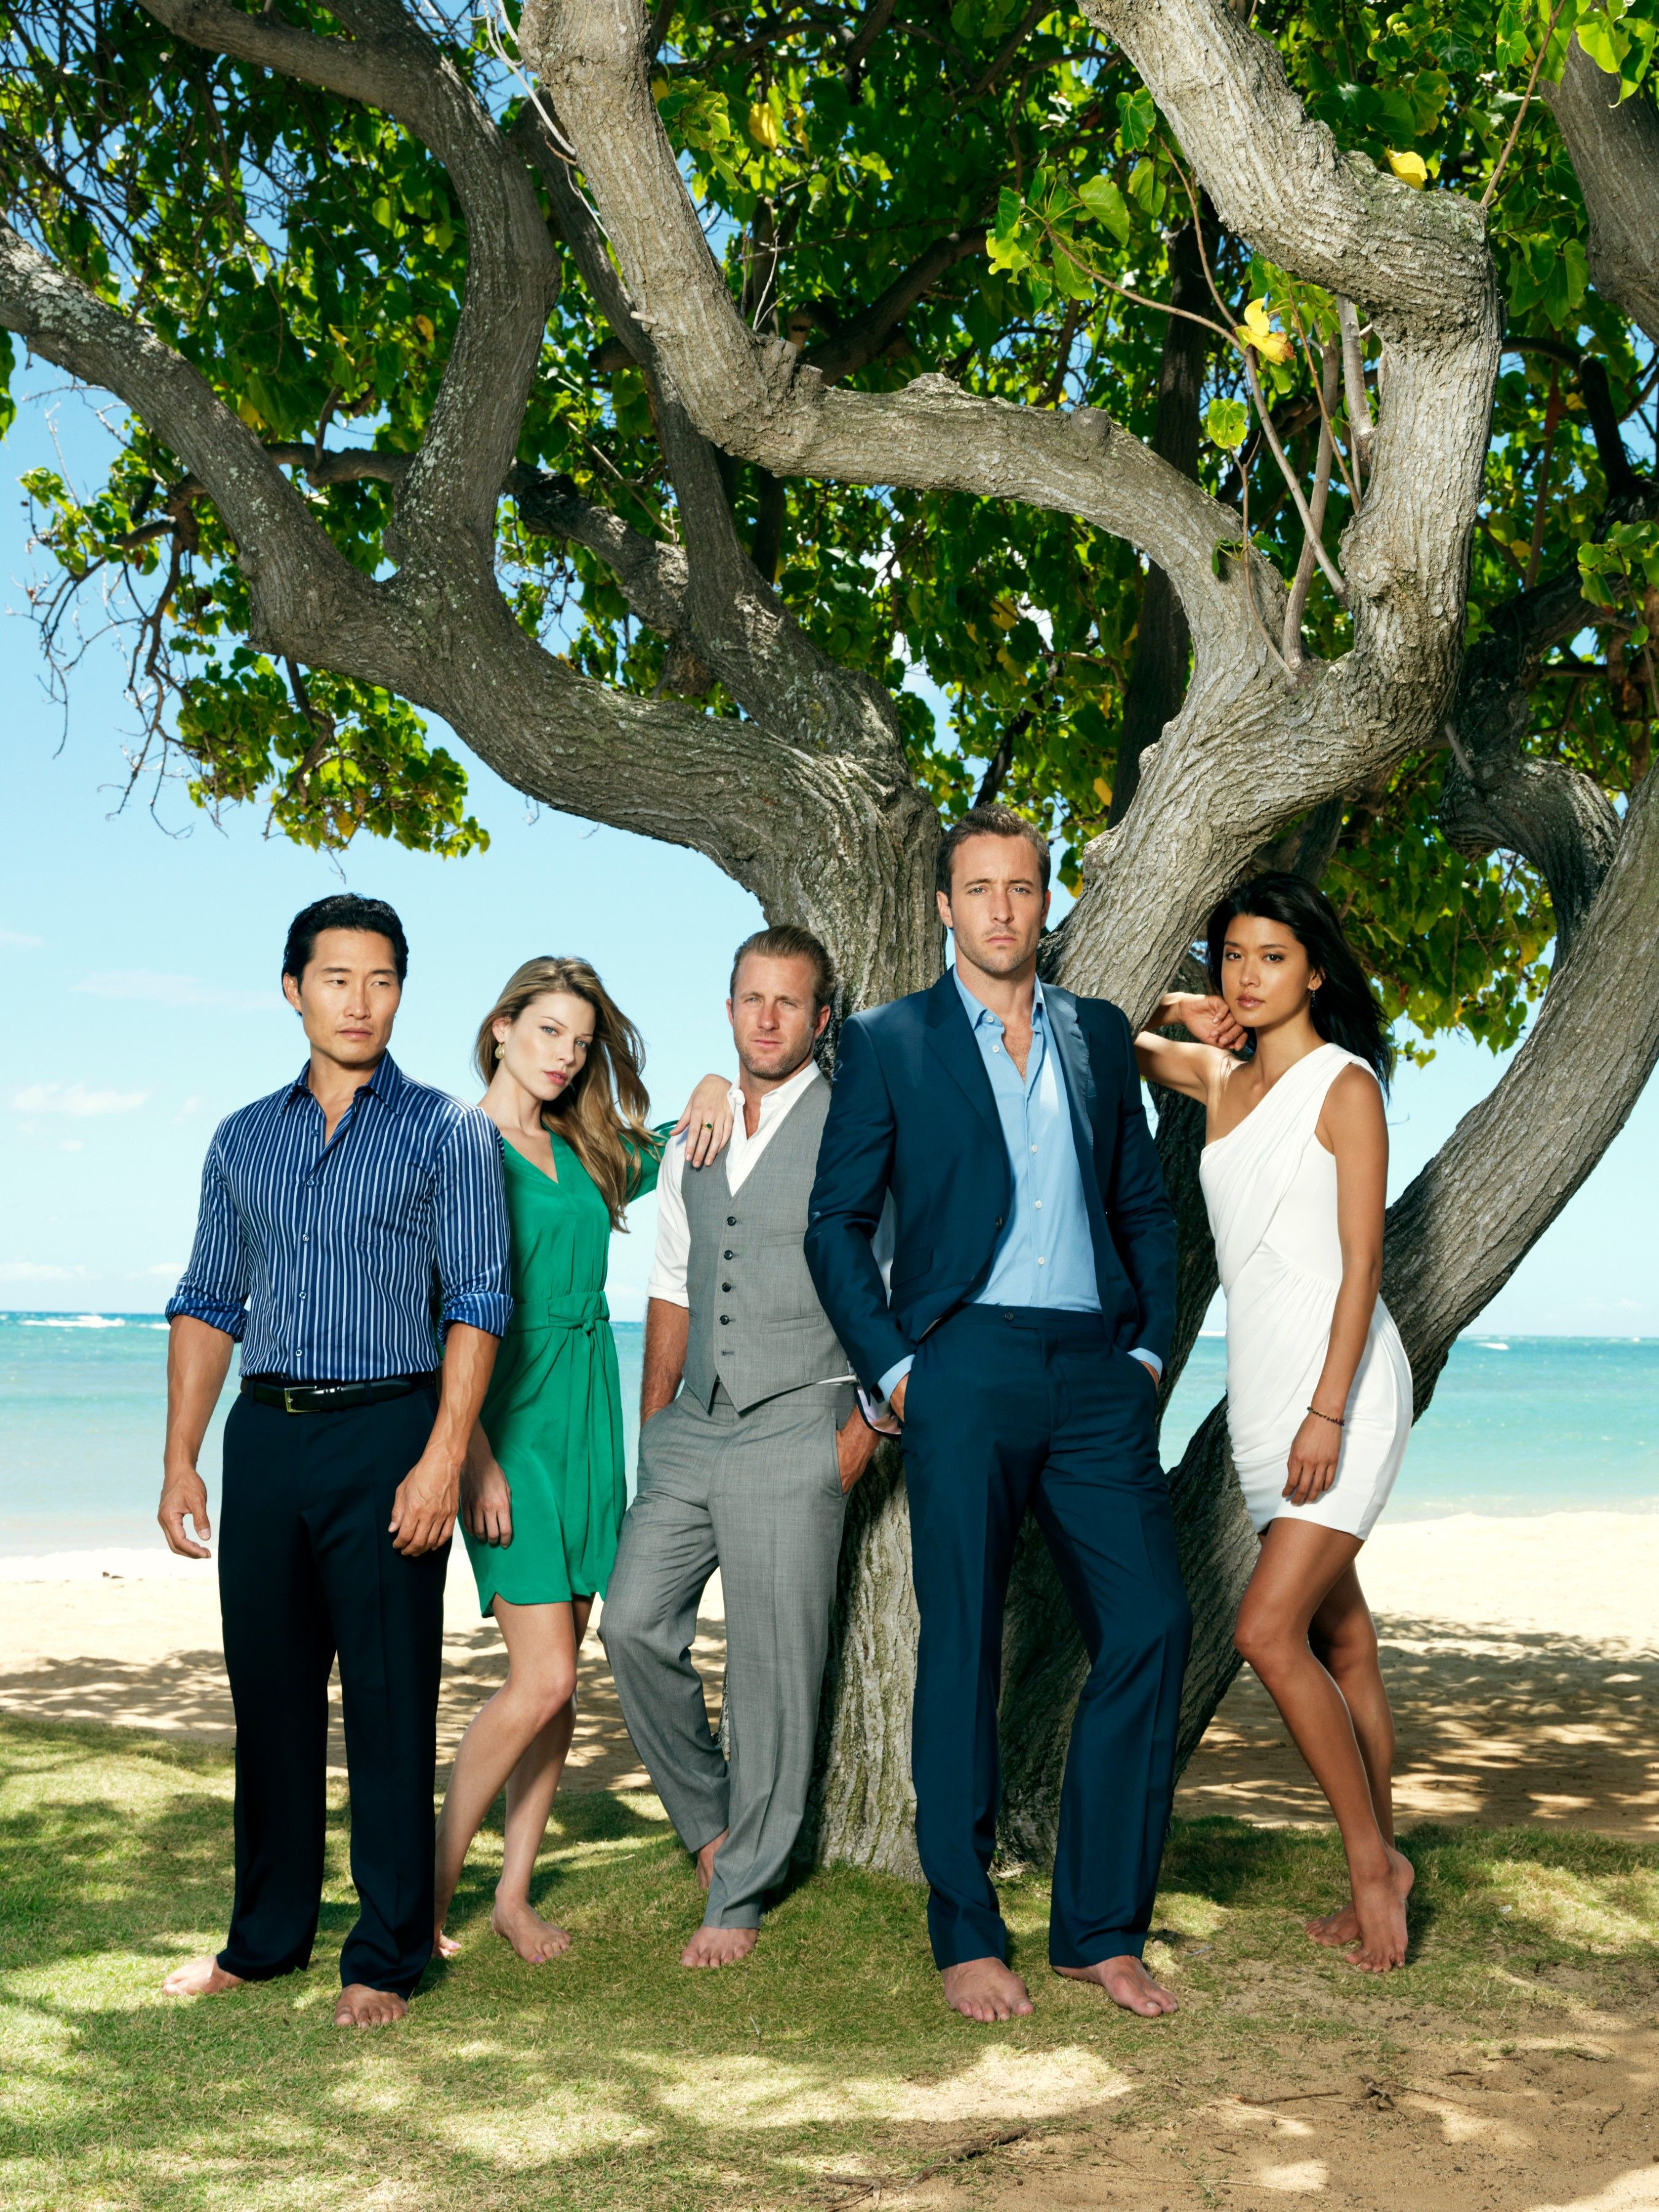 Hawaii Five O The Second Season On Dvd Http Ow Ly Ckgiw